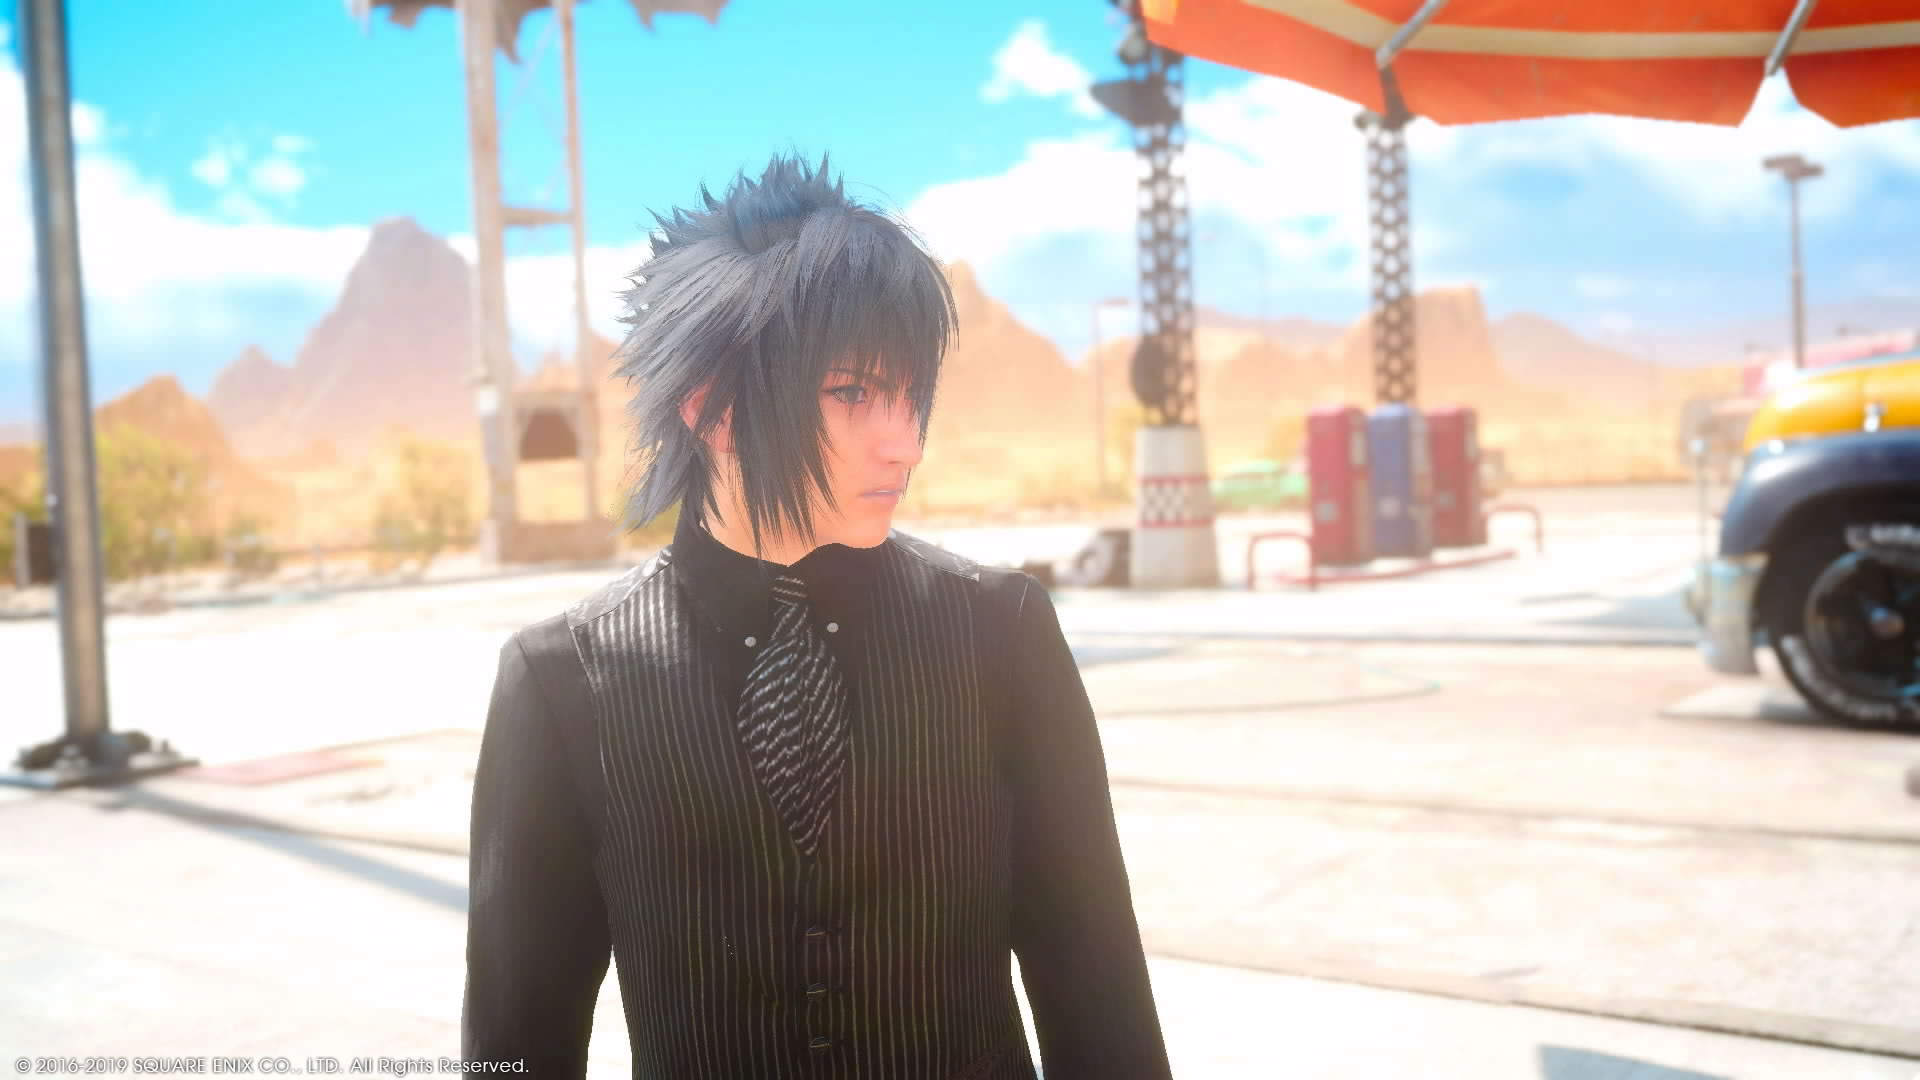 In this image, a game character, a male with dark hair and dressed in a black suit, is looking off screen to the right.